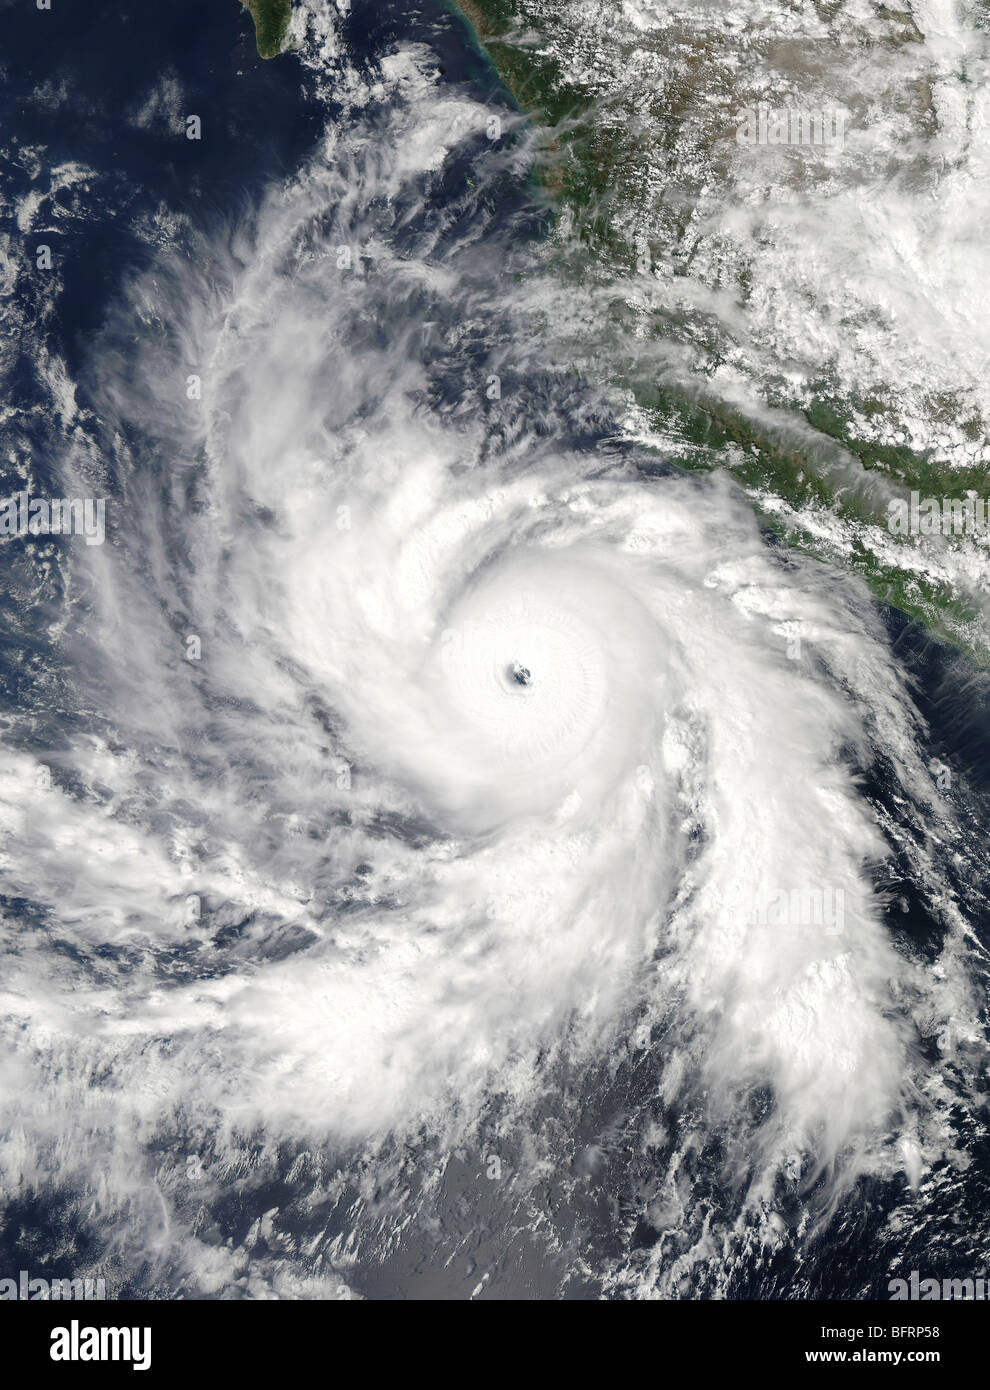 Hurricane Rick hovers over the eastern Pacific Ocean. - Stock Image